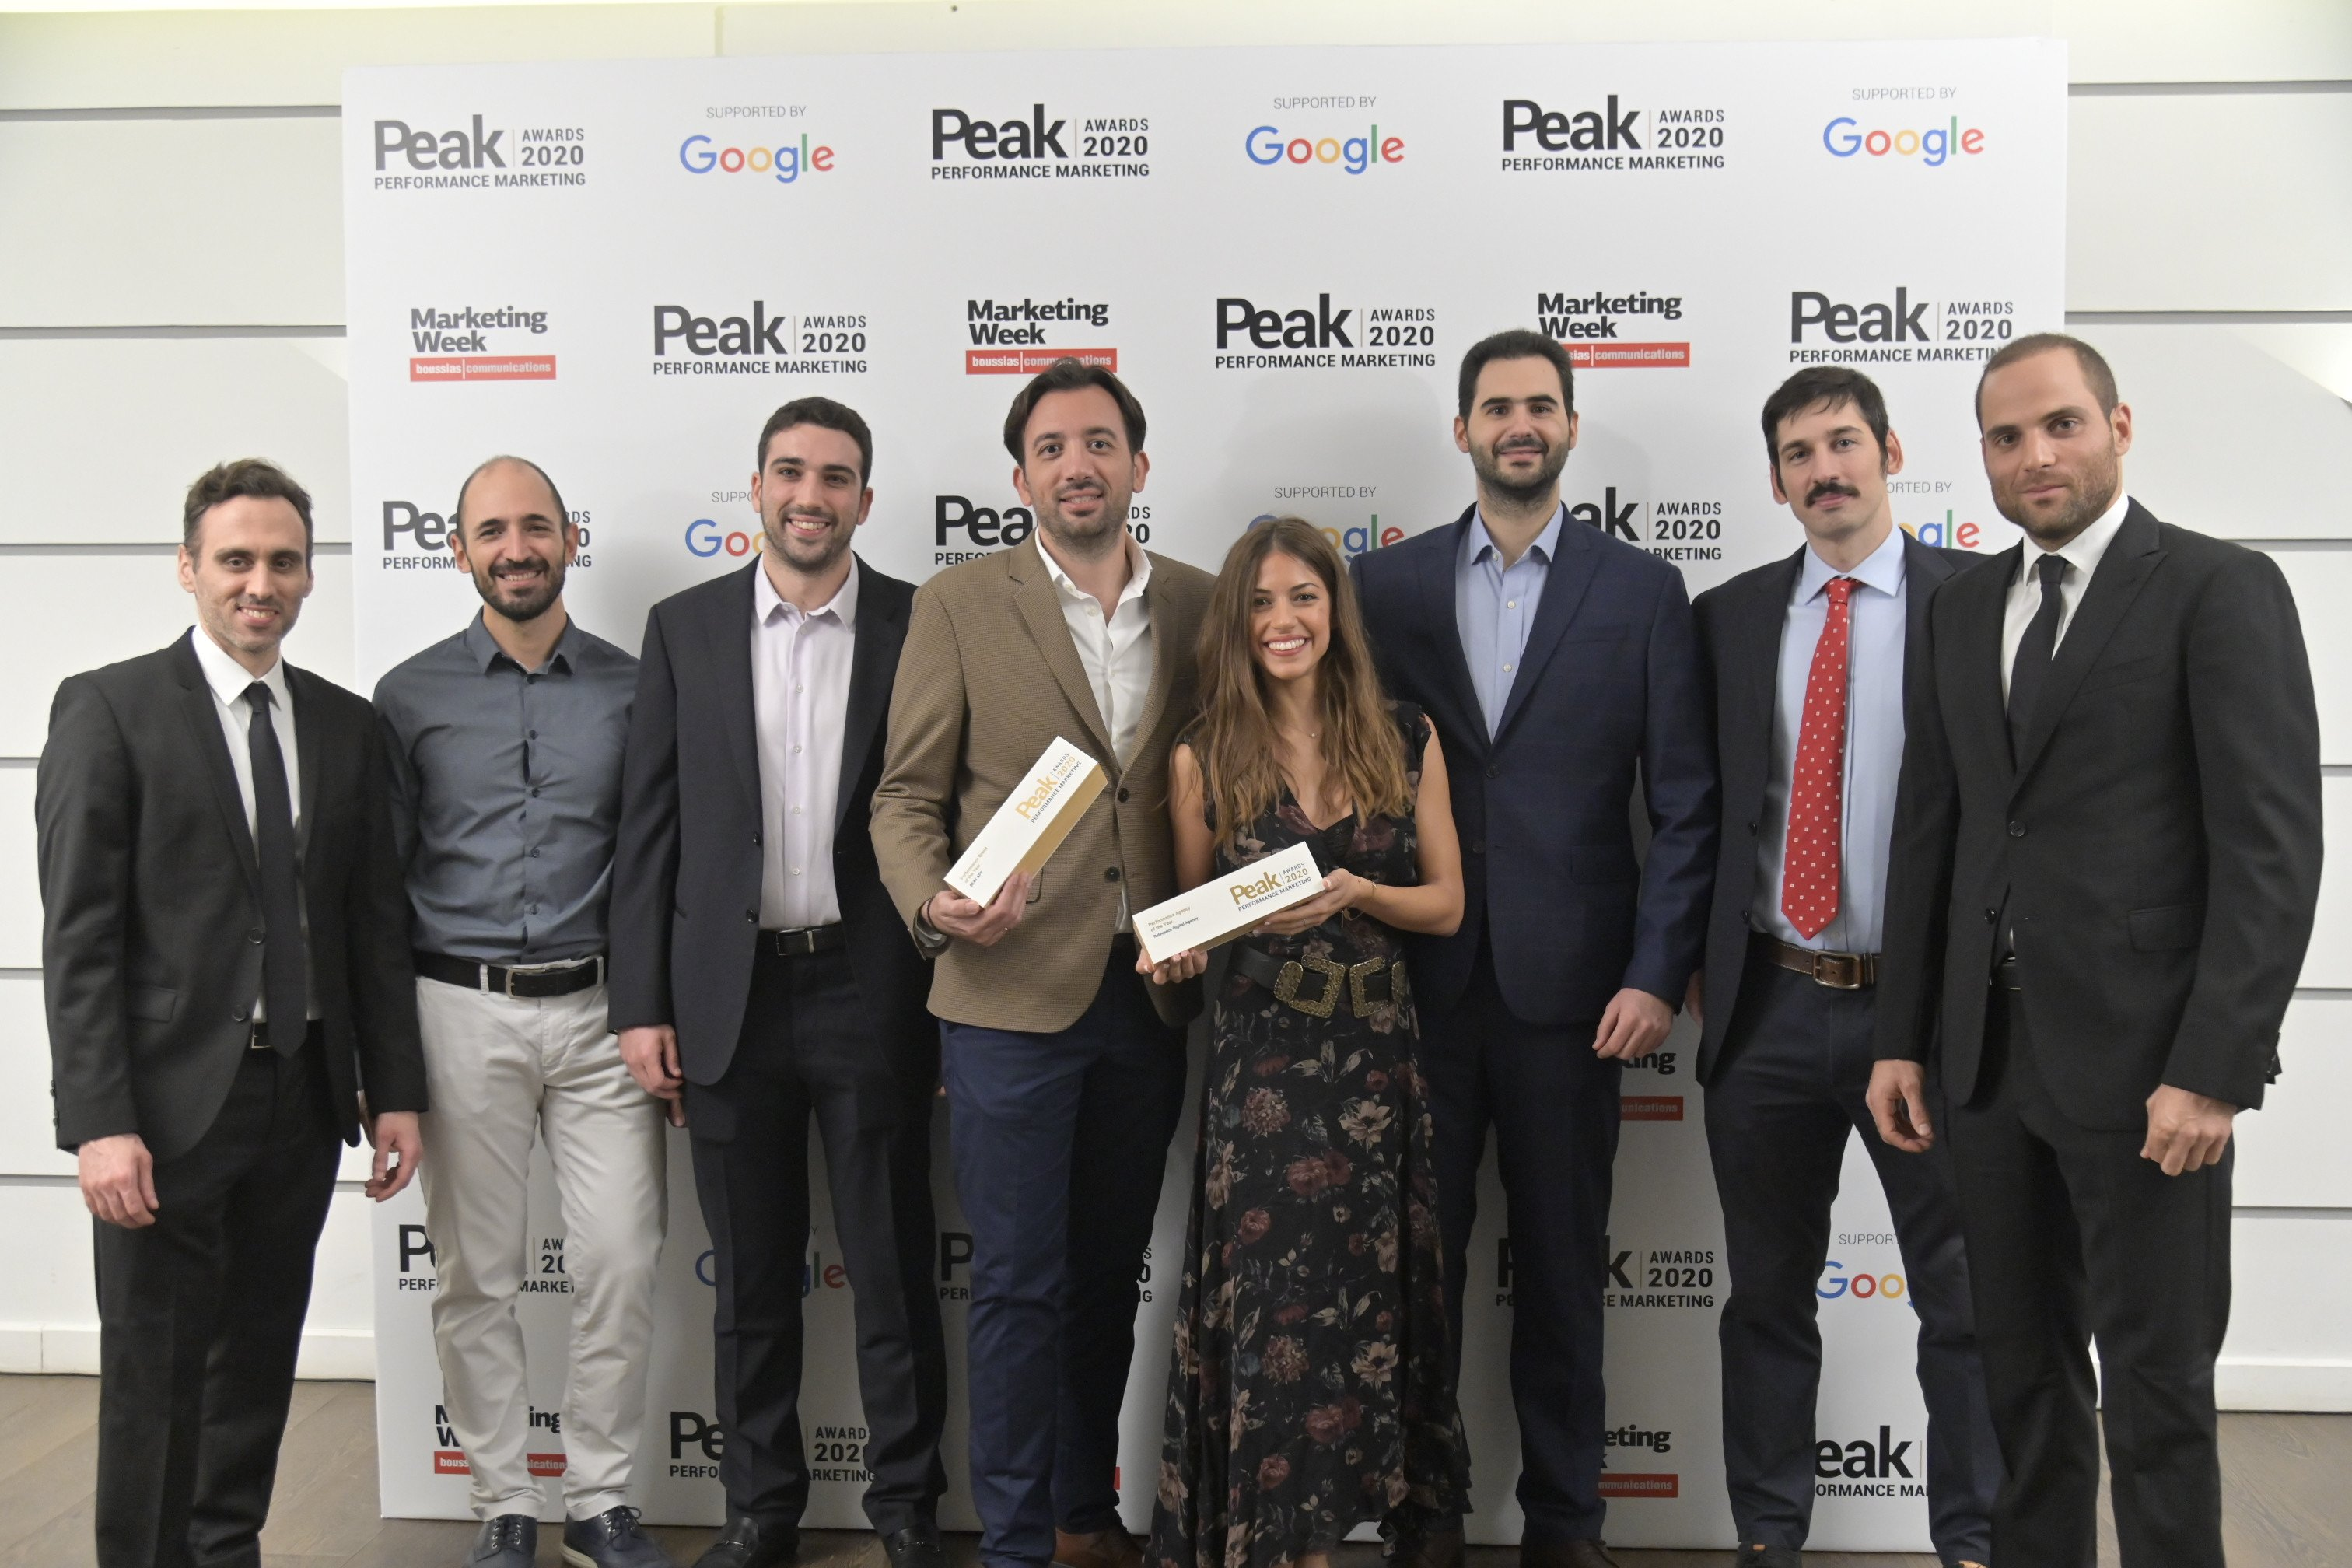 ''Team Relevance has been named Performance Marketing Agency of the year 2020 and received 41 PEAK Awards''